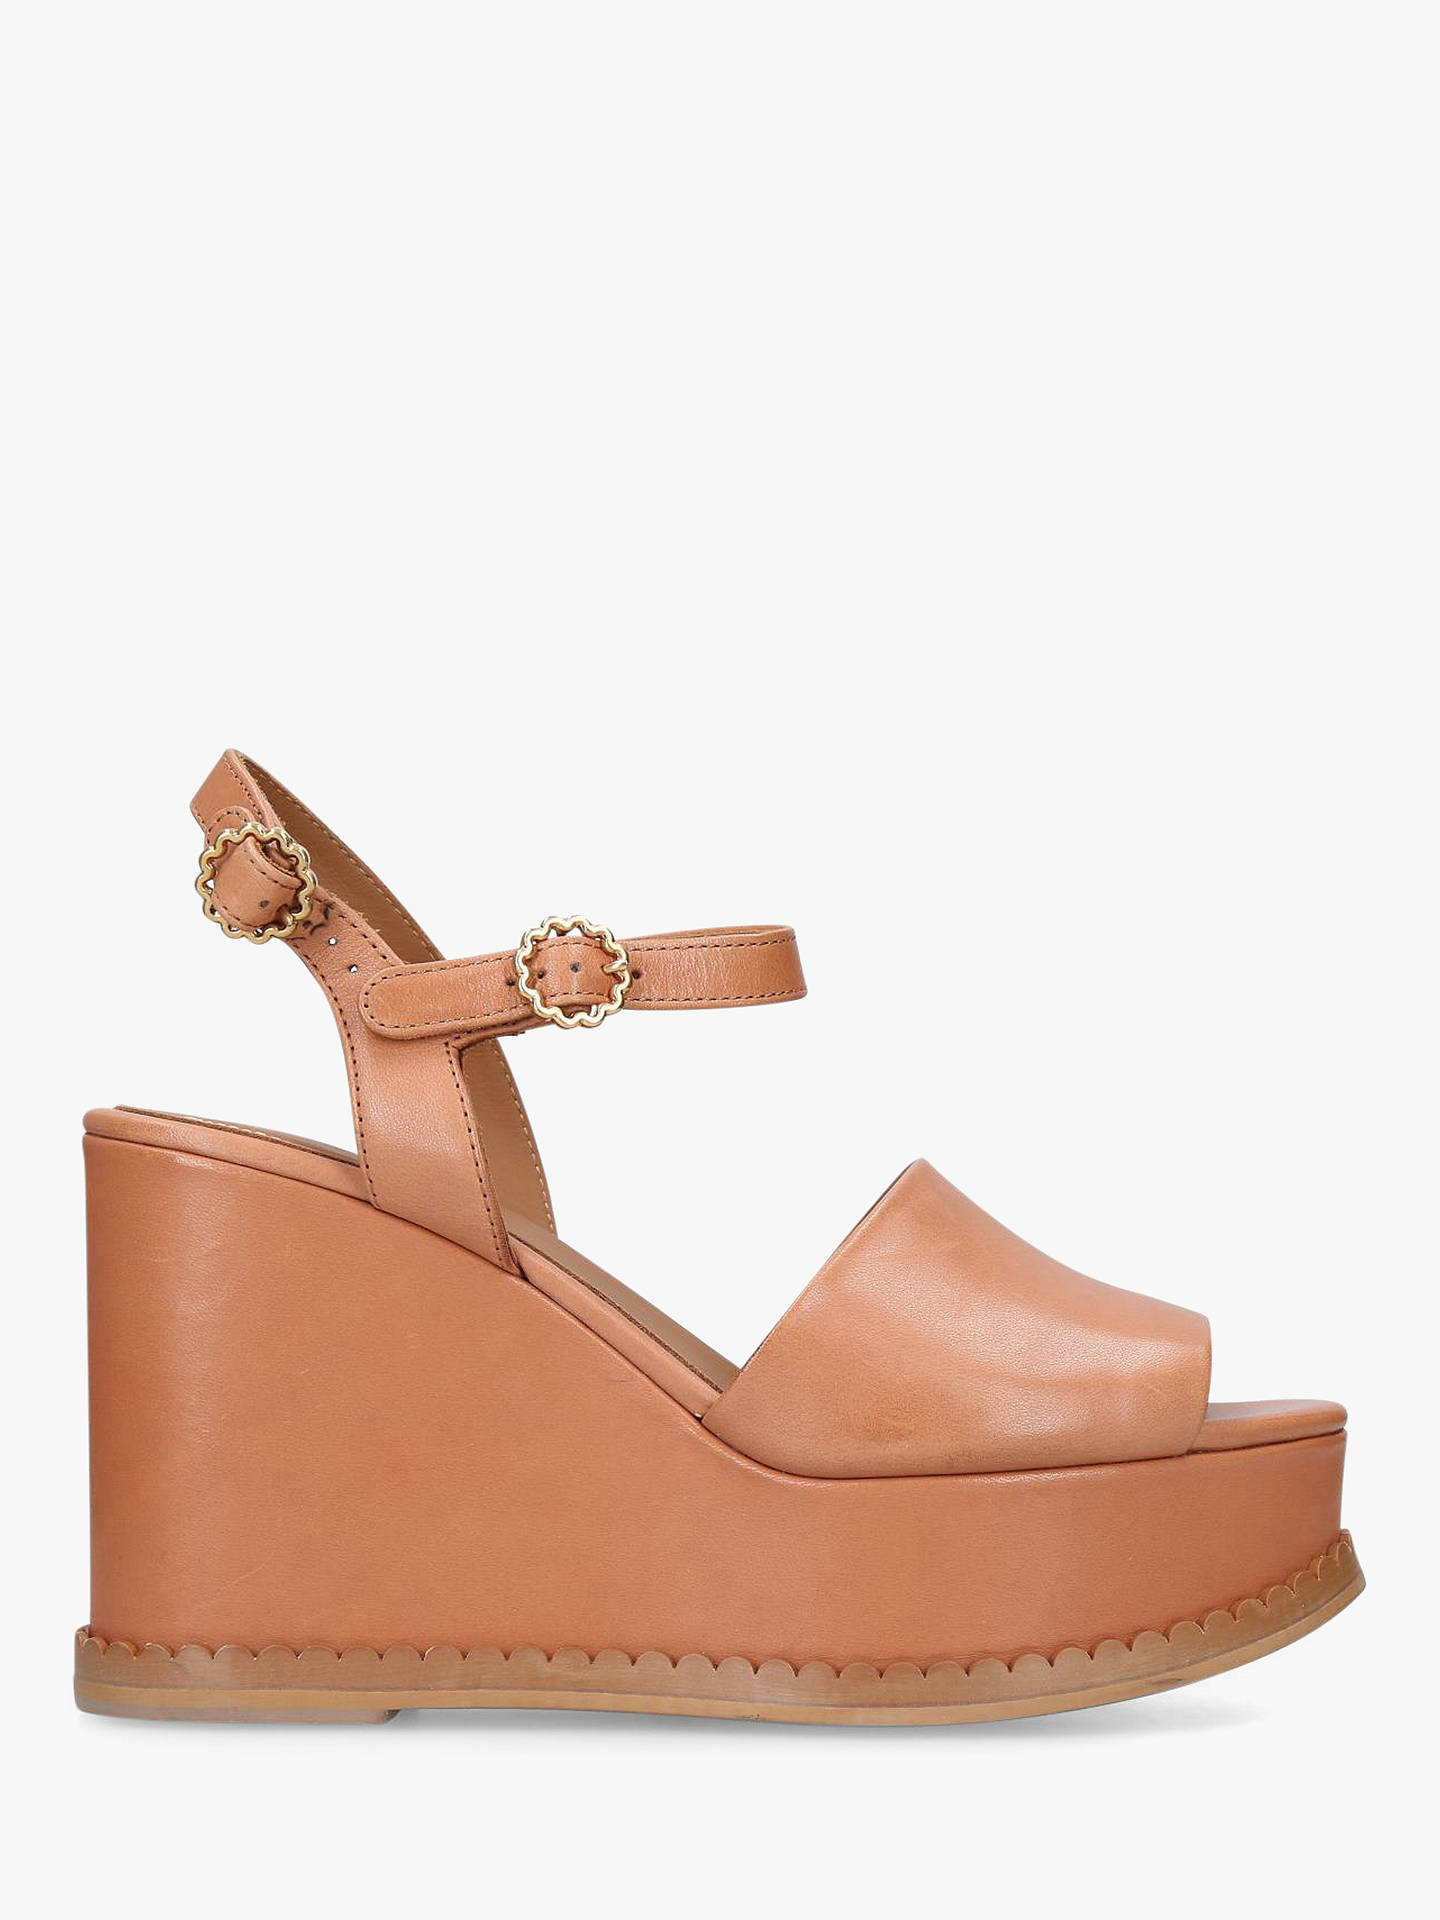 49475211d017 Buy See By Chloé Texture Platform Sandals